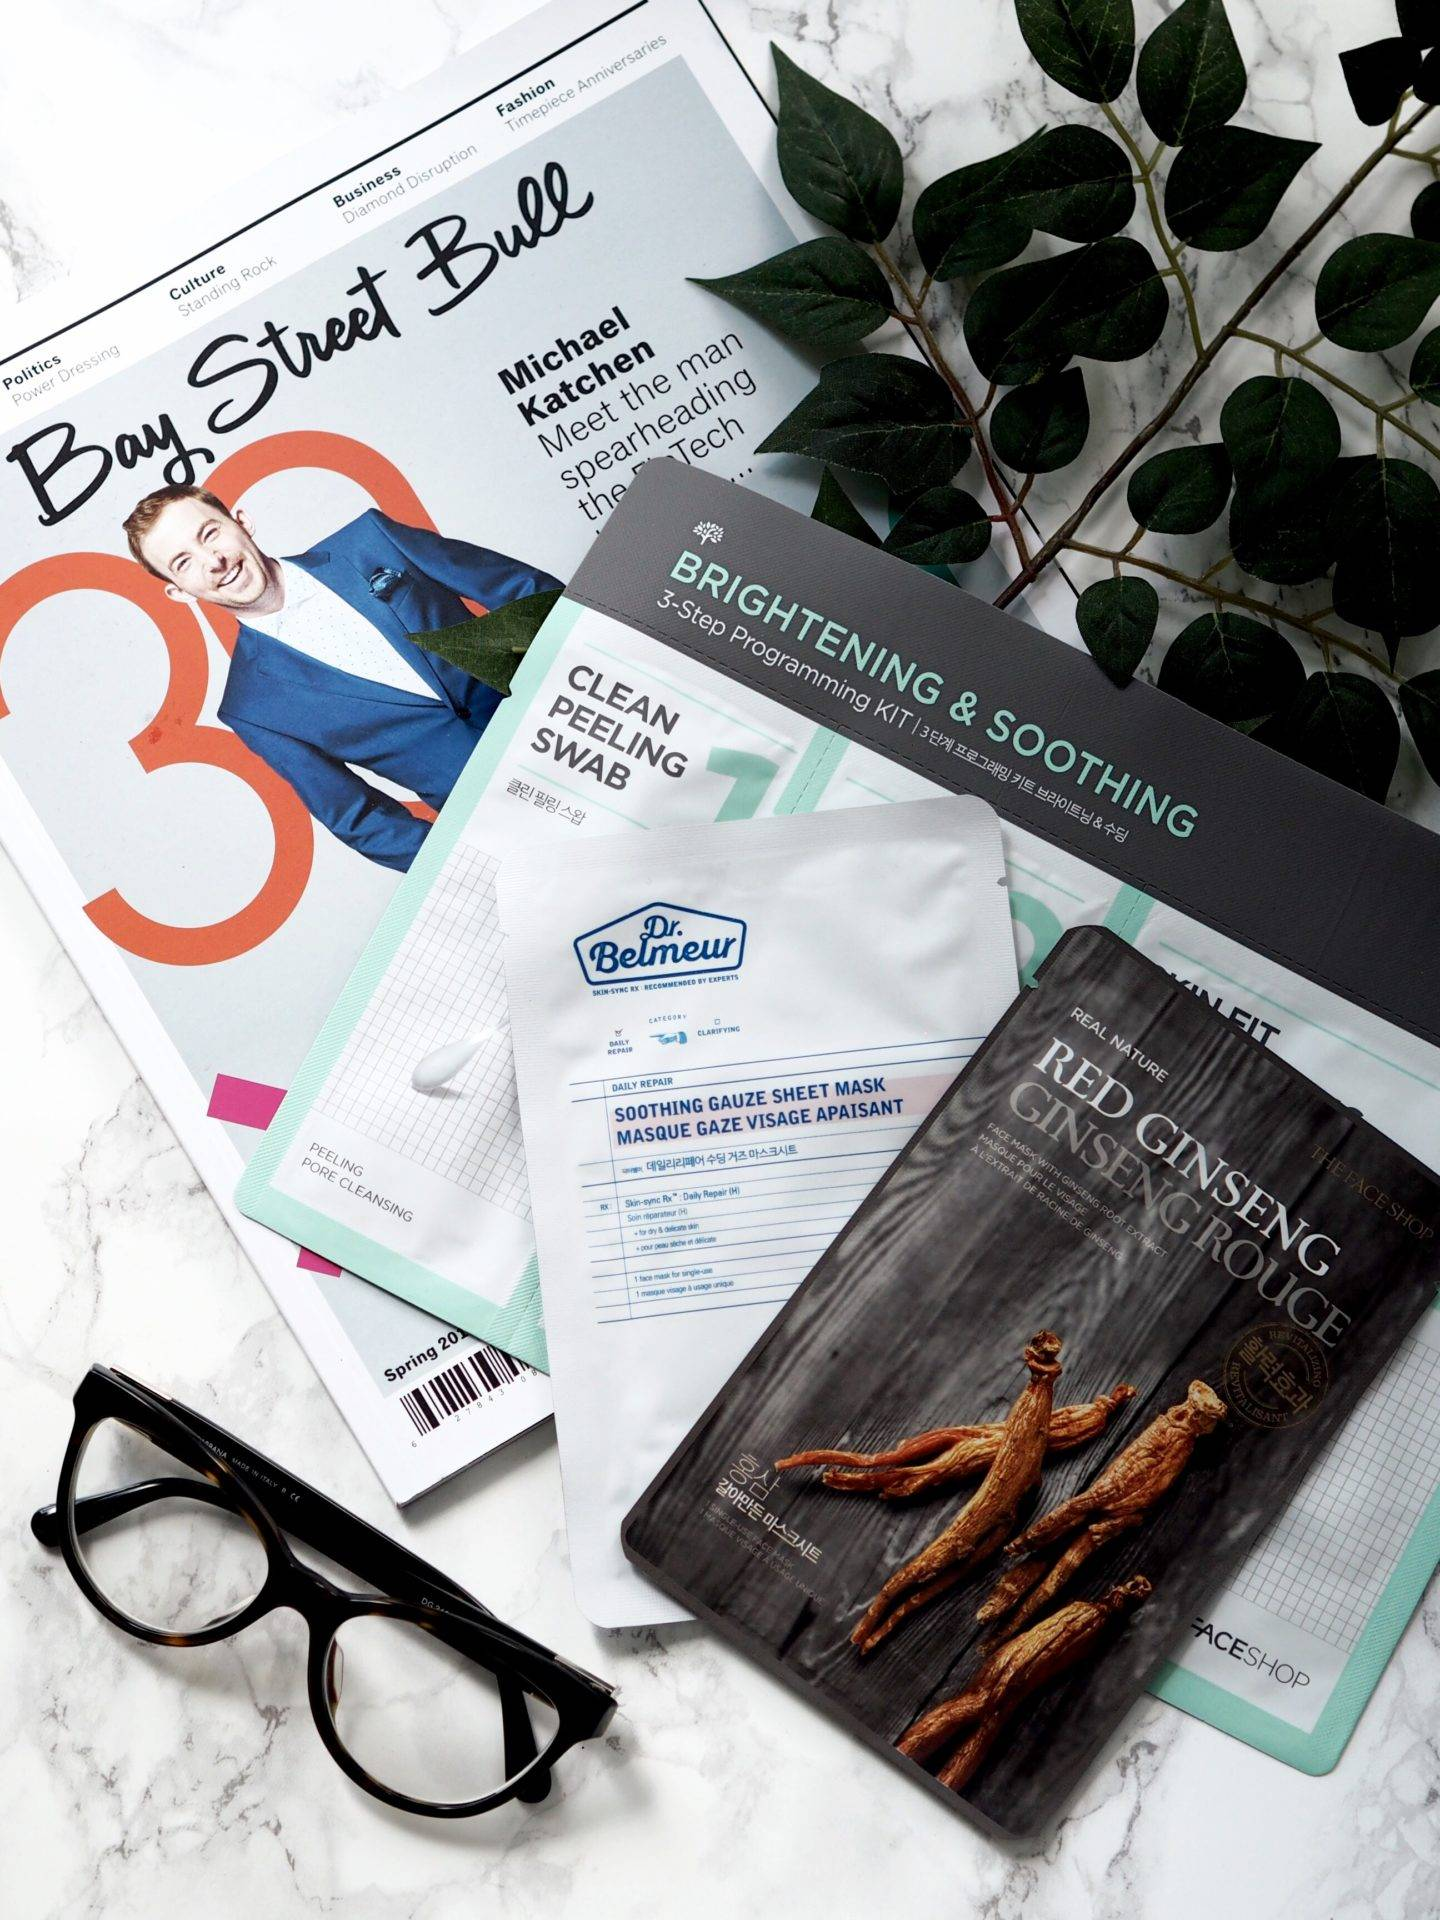 The Face Shop Face Mask Roundup